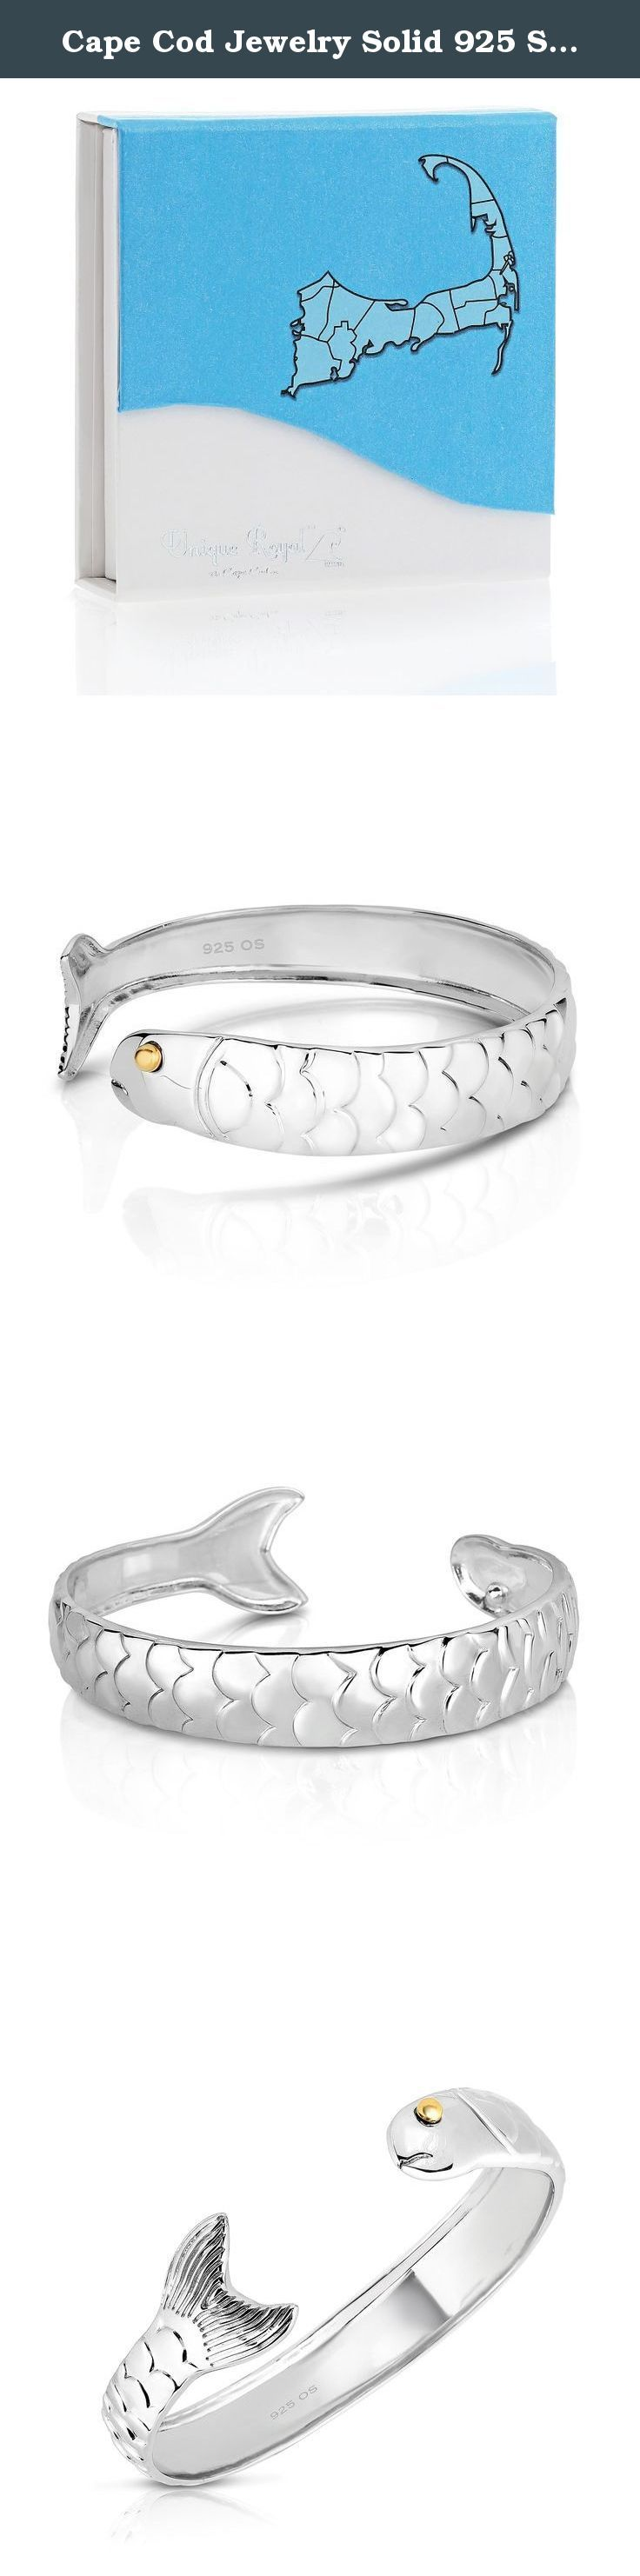 Cape Cod Jewelry Solid 925 Sterling Silver and 14k Gold Plated Cod Fish Cuff Bracelet (Natural Silver). This Cod Fish Cuff bracelet design is a member of the family of our Cape Cod's popular line of Jewelry. As part of the most popular styles of the Cape Cod Jewelry line this cuff bangle bracelet features the symbol of Cape Cod, the Cod Fish, in a beautiful intricate design. Each of our jewelry items come in an adorable gift box for safe storage or to surprise that very special person in...